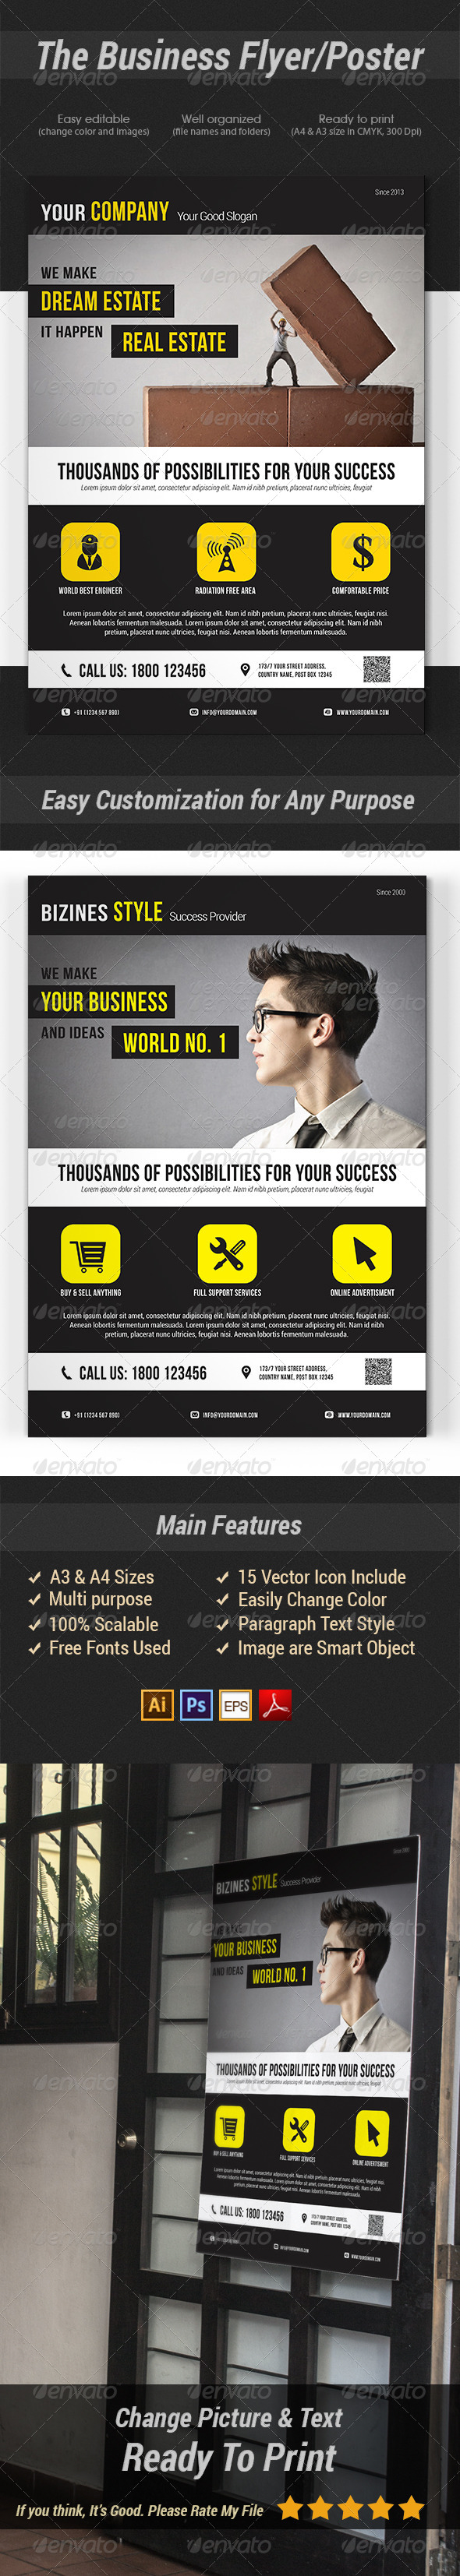 GraphicRiver The Business Flyer Poster 7470877